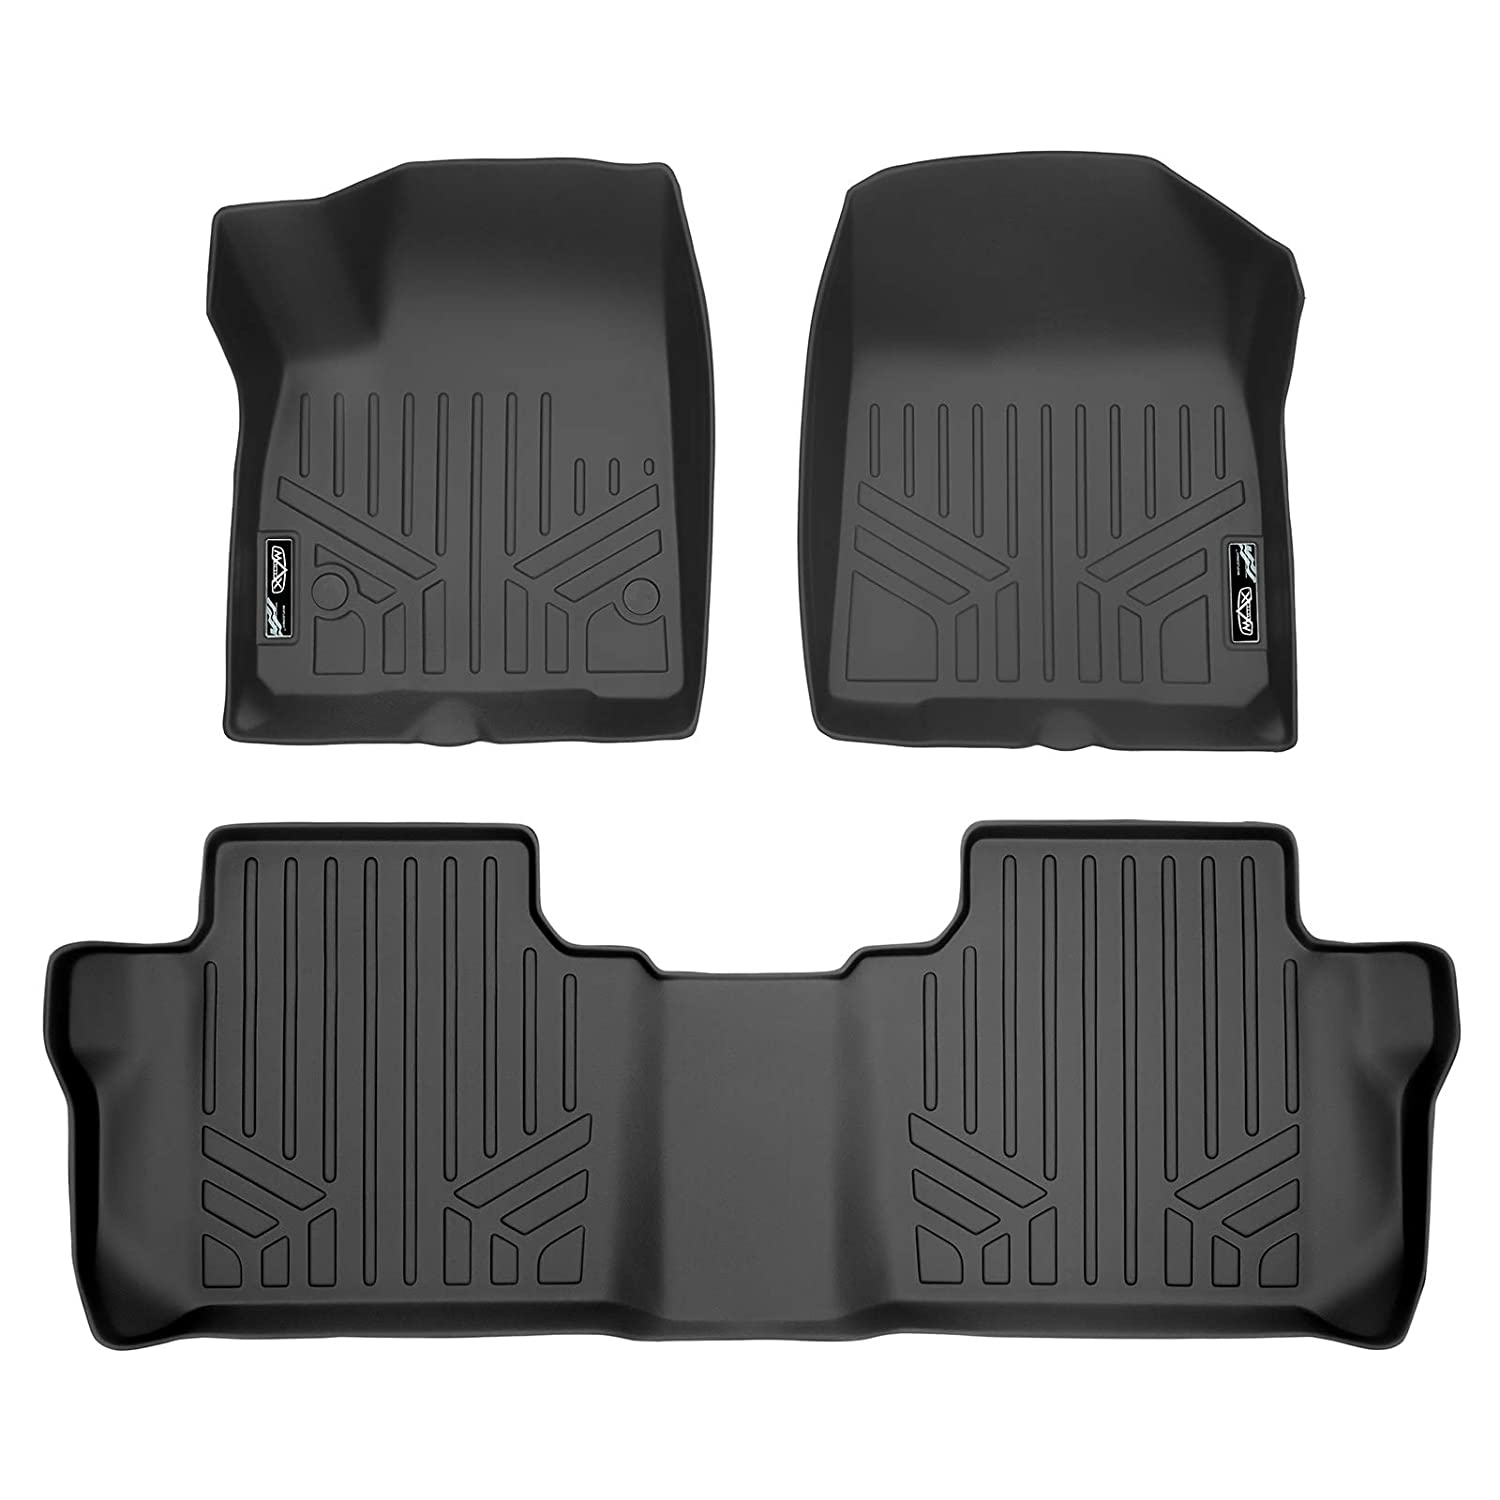 SMARTLINER Custom Fit Floor Mats 2 Row Liner Set Black for 2020 Cadillac XT6 with 2nd Row Bench Seat